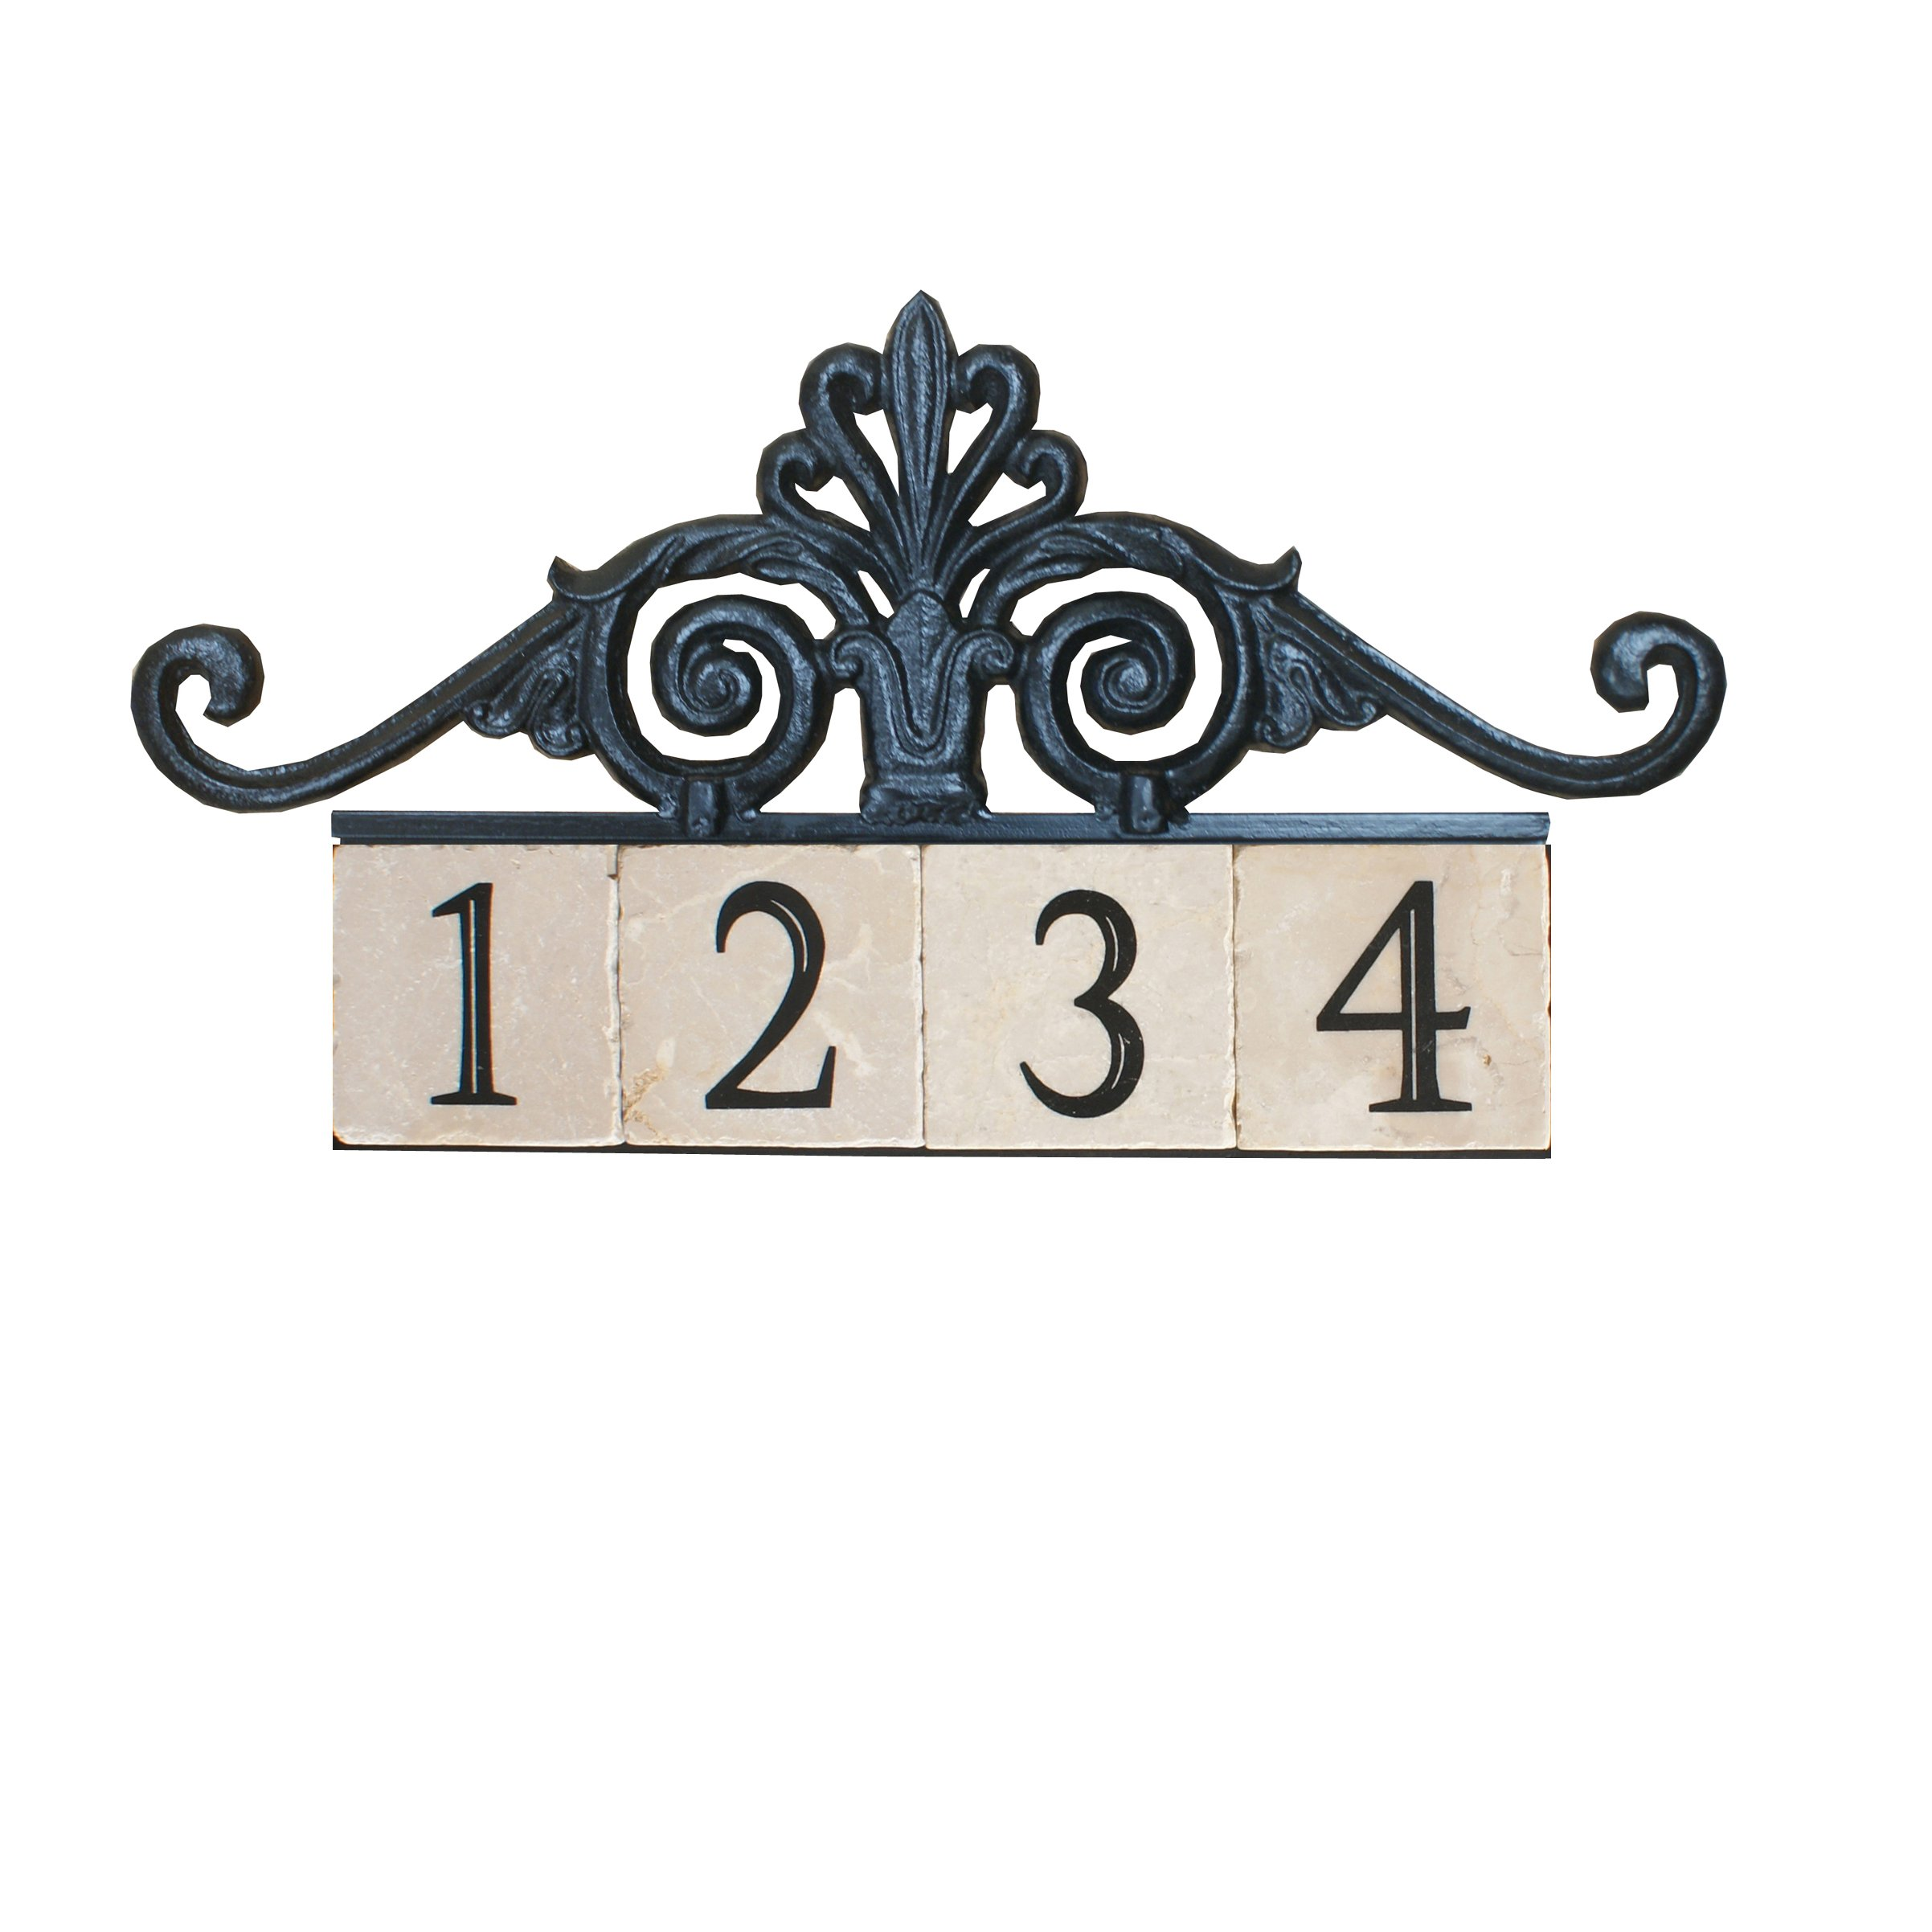 NACH KA House Address Sign/Plaque - Royal Gate, 4 Numbers, Iron, 22 x 9 x 1''